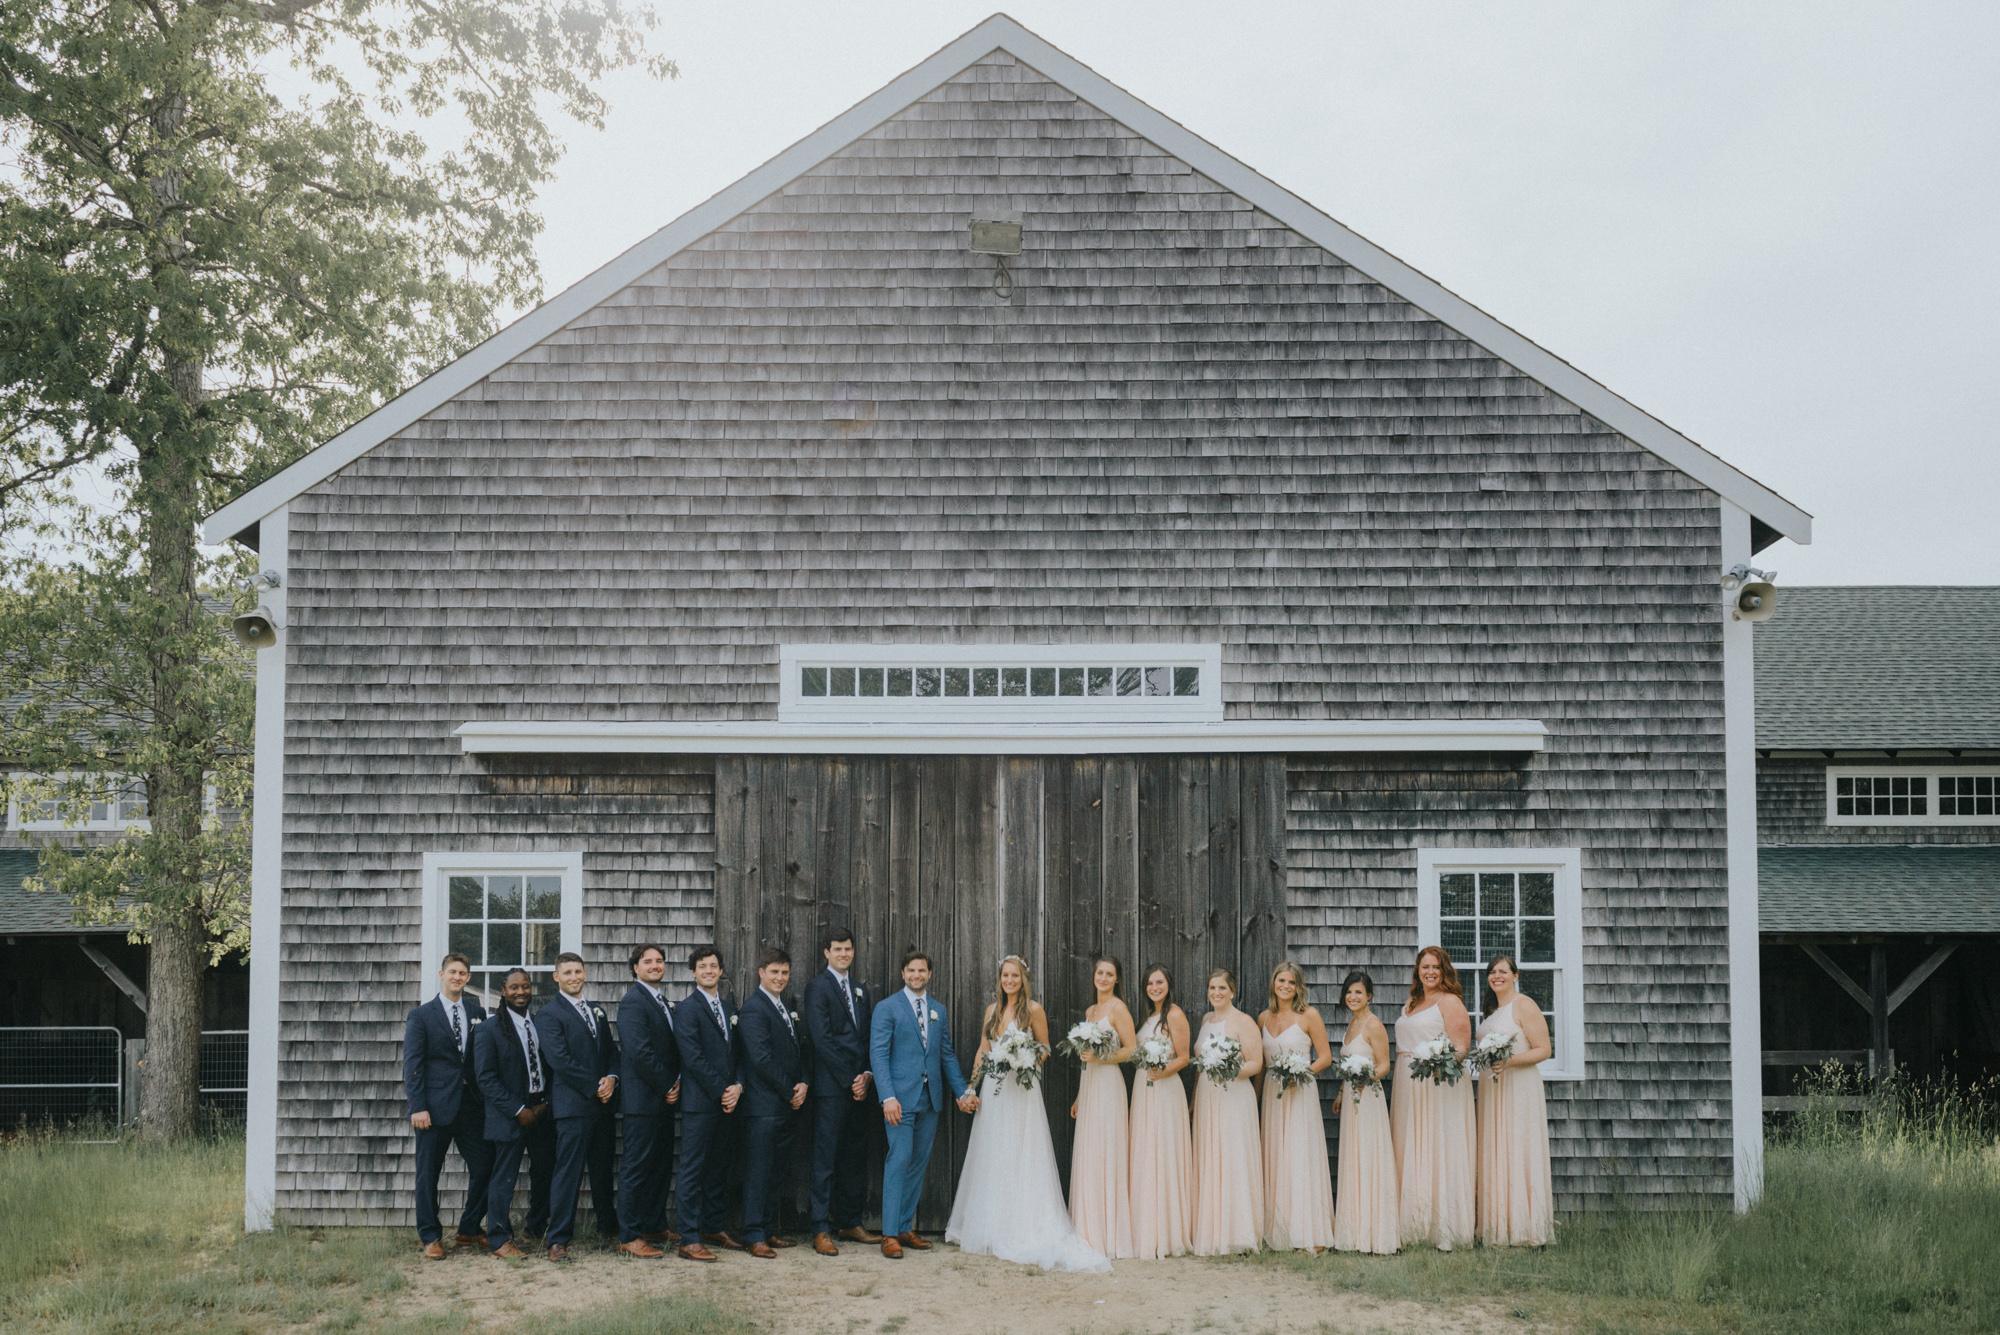 A wedding party at the Martha's Vineyard Agricultural Hall in West Tisbury photo by David Welch Photography